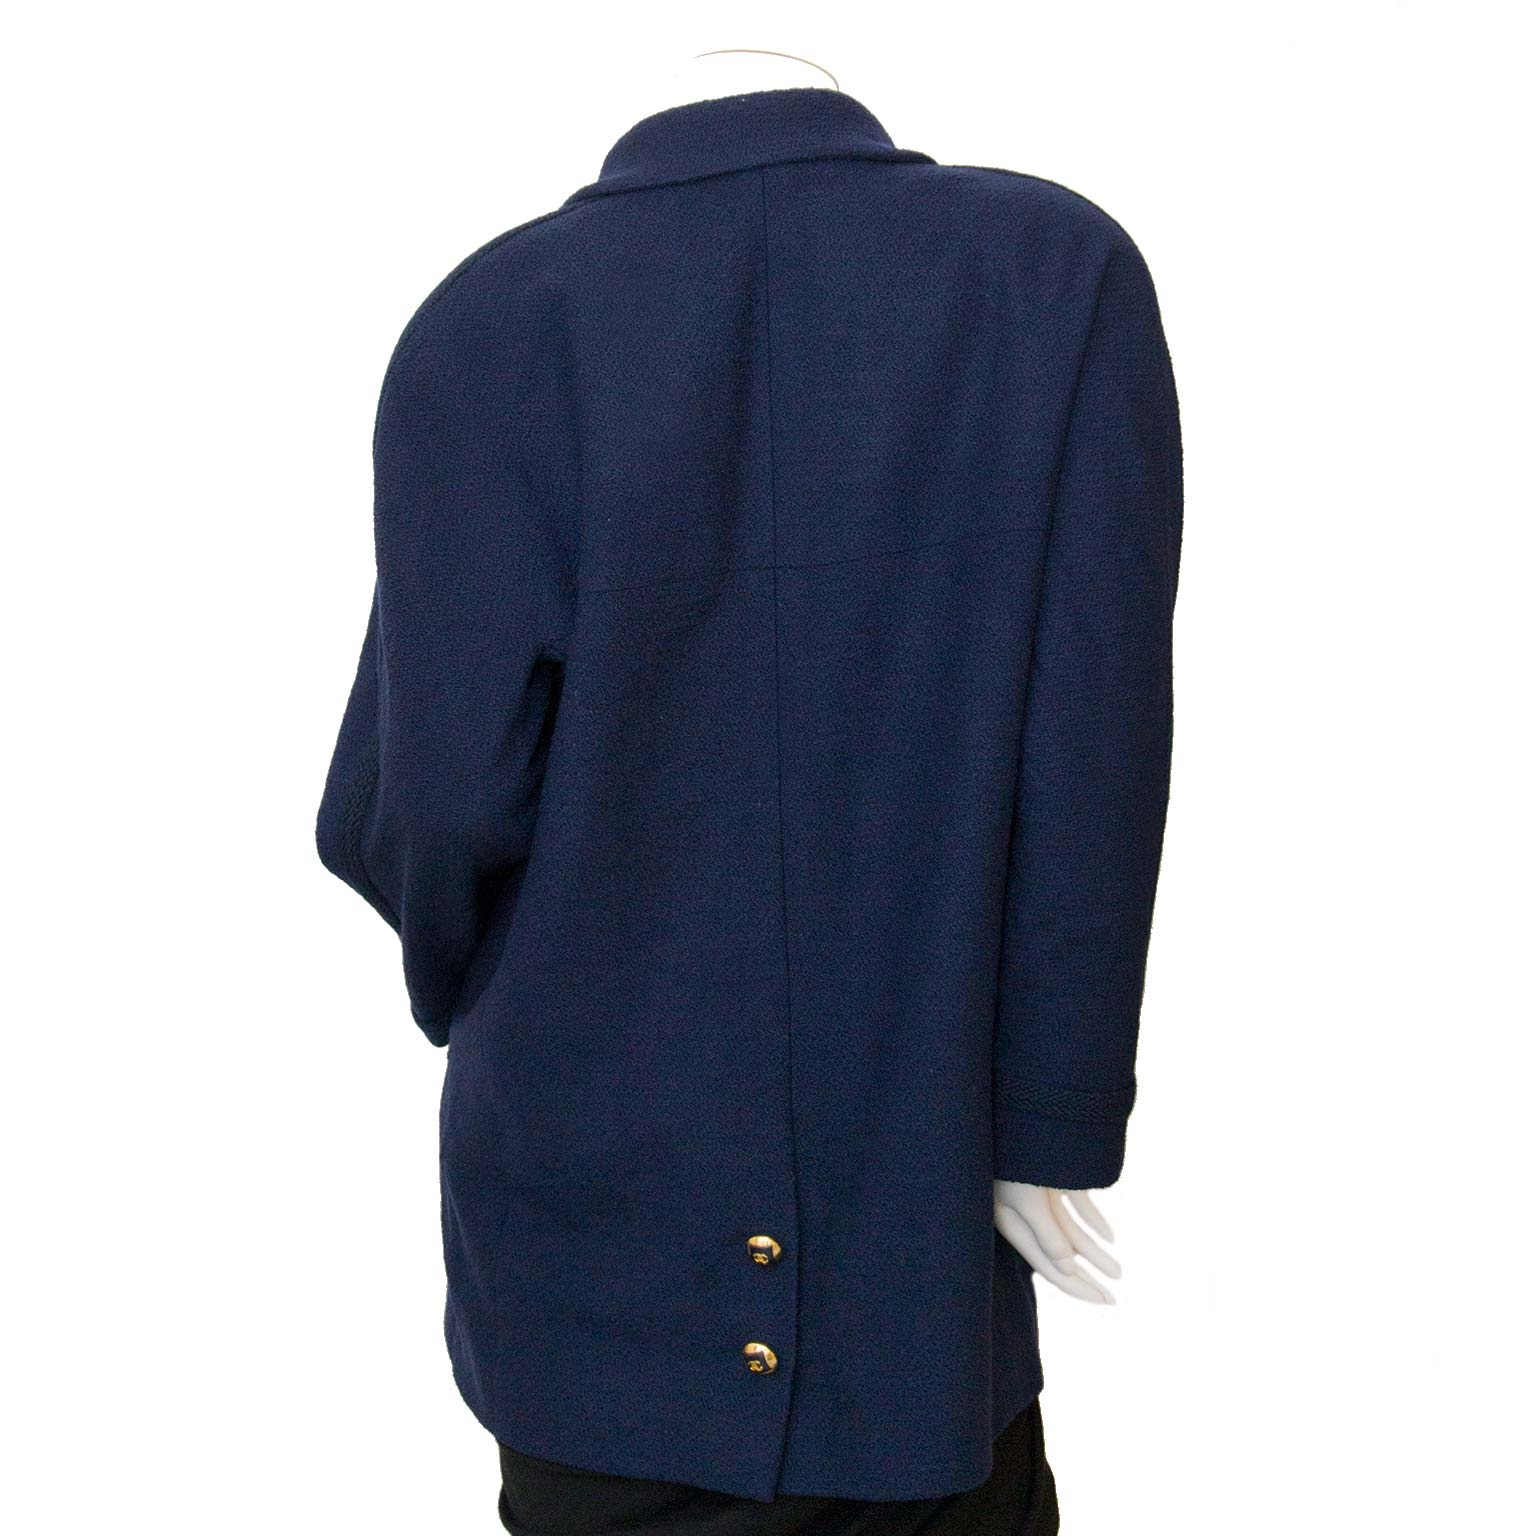 buy Chanel Dark Blue Tweed Jacket - Size 40 at labellov for the best price